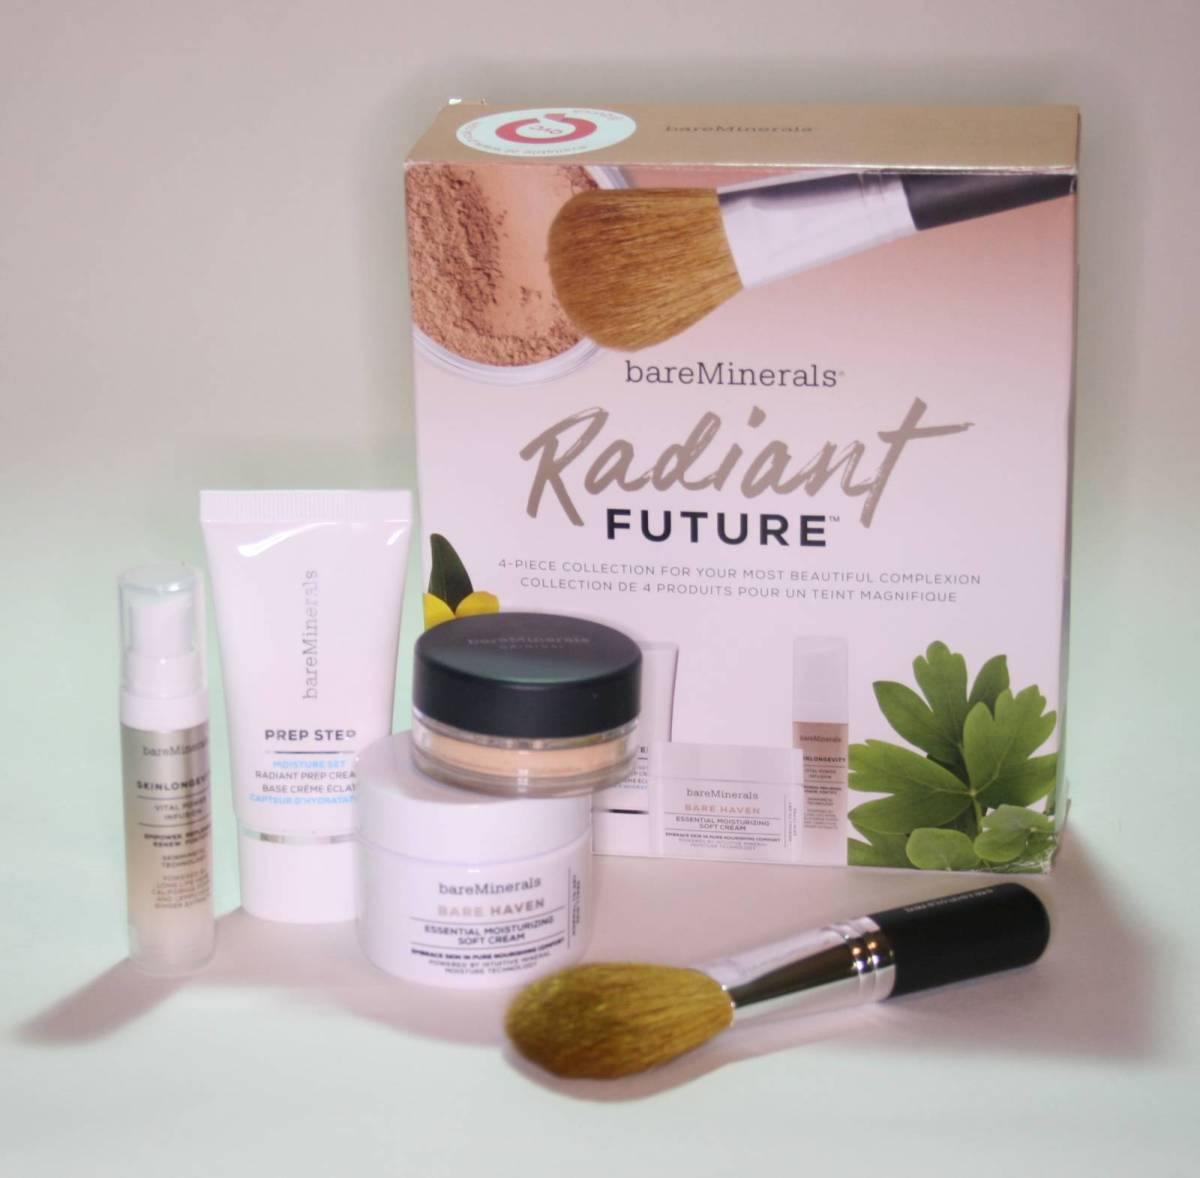 bareMinerals 4 Piece Radiant Future Collection